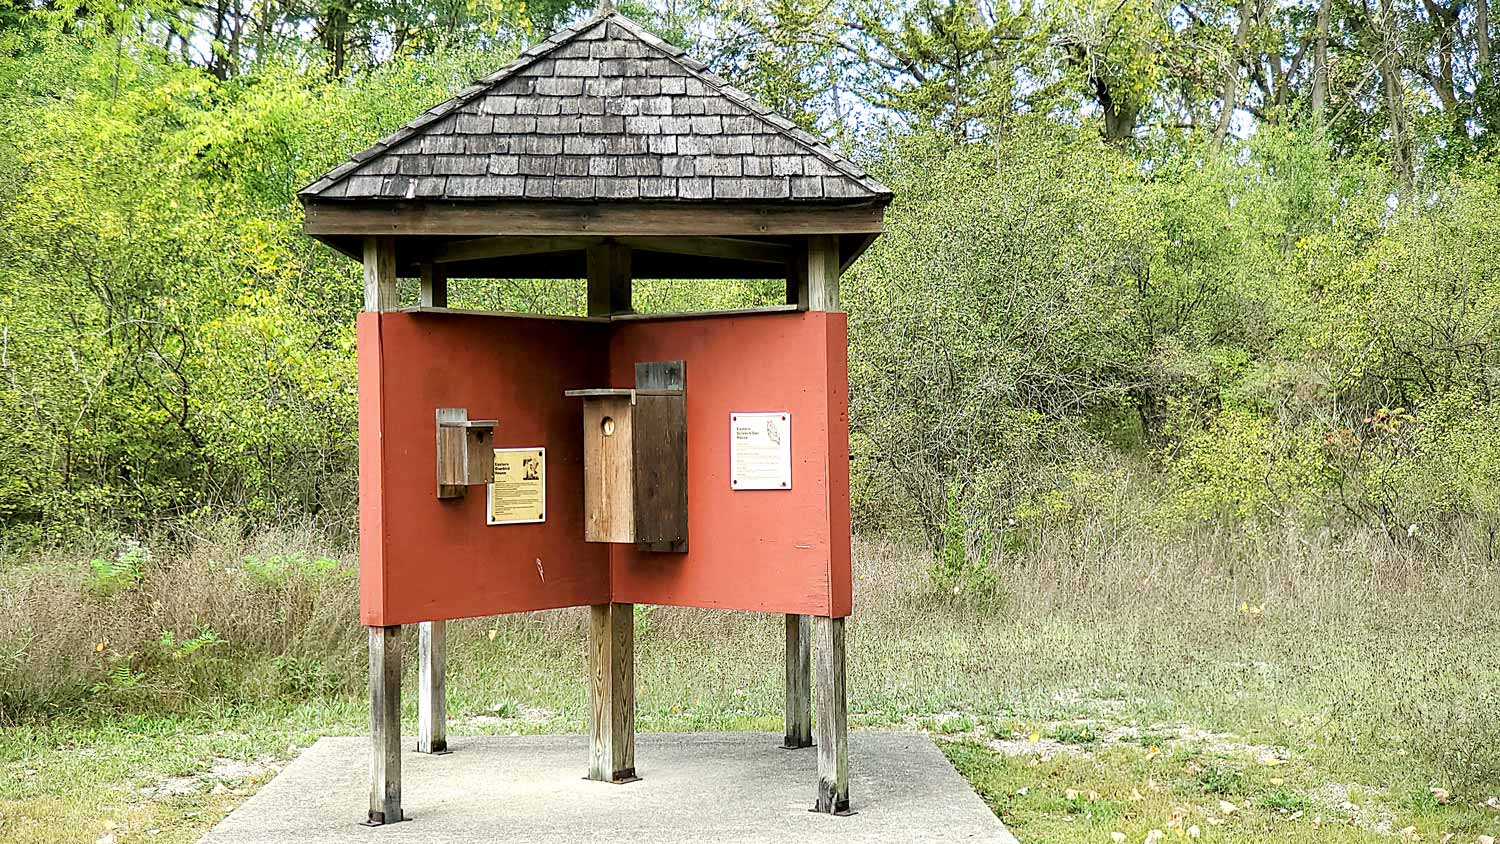 Exhibit of various bird and animal houses at The Hollows.